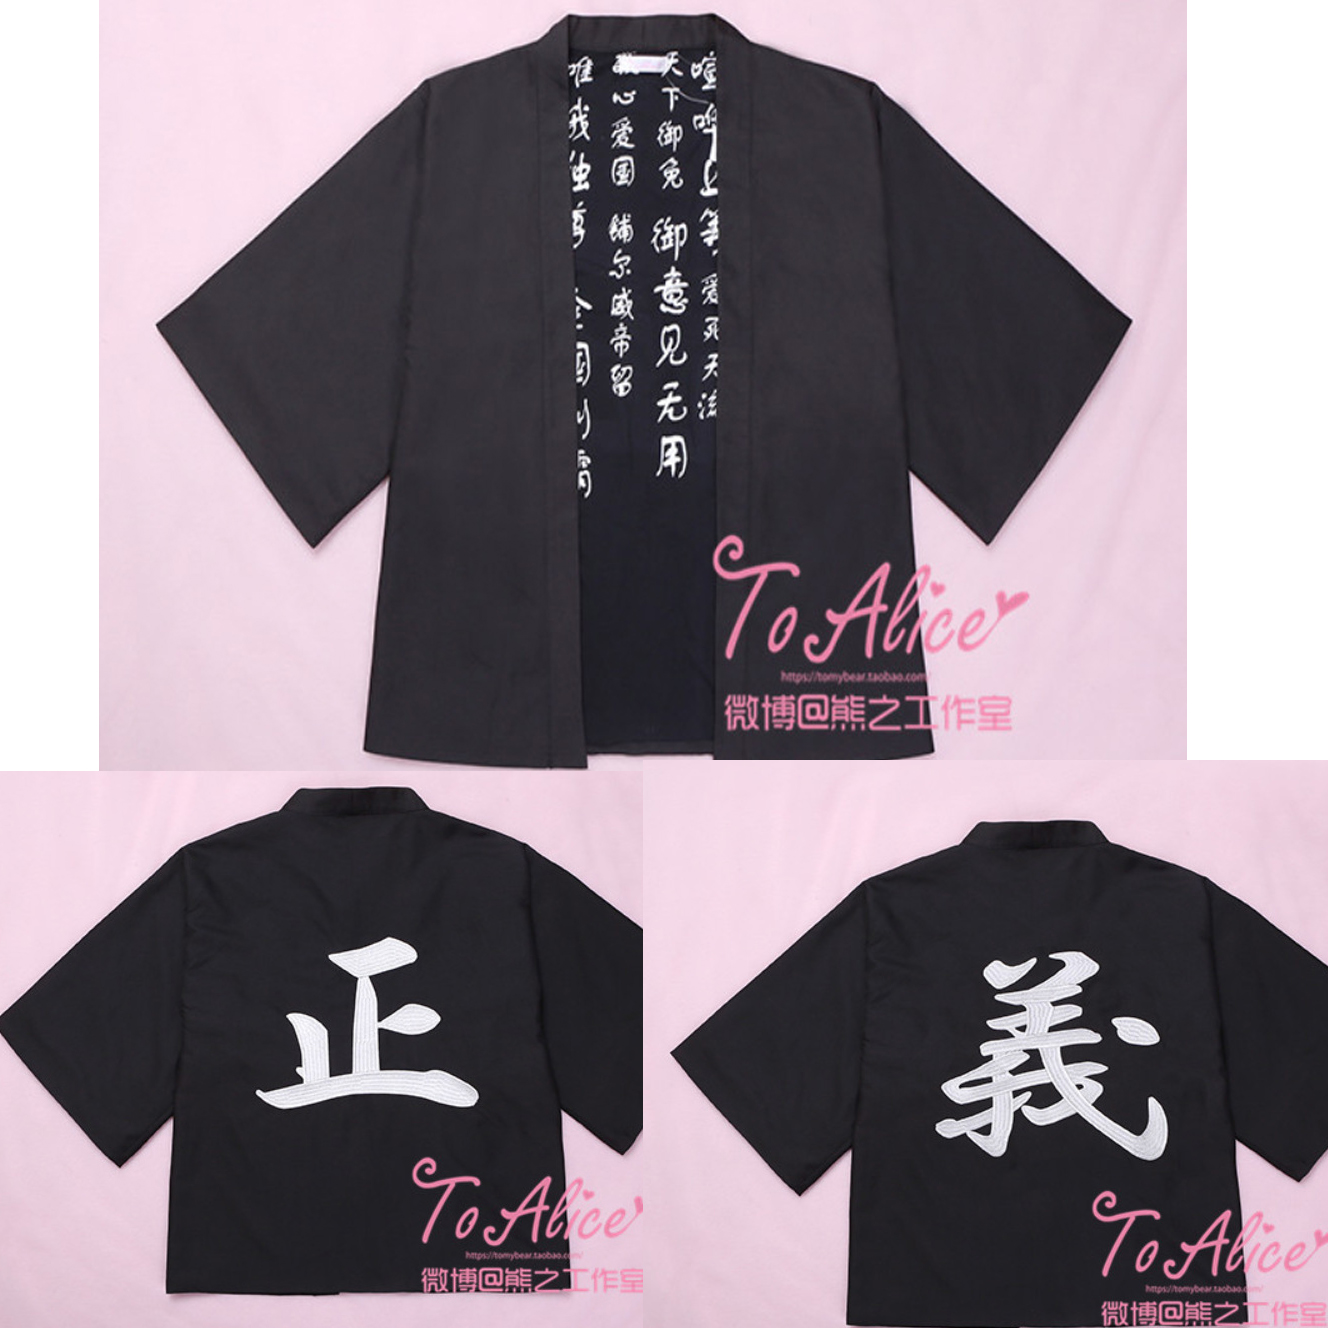 Punctual Japanese Chinese Letter Embroidery Bad/poster/justice Print Funny Kimono Loose Blouse Streetwear Hip Hop Punk Top Shirt Harajuku Price Remains Stable Blouses & Shirts